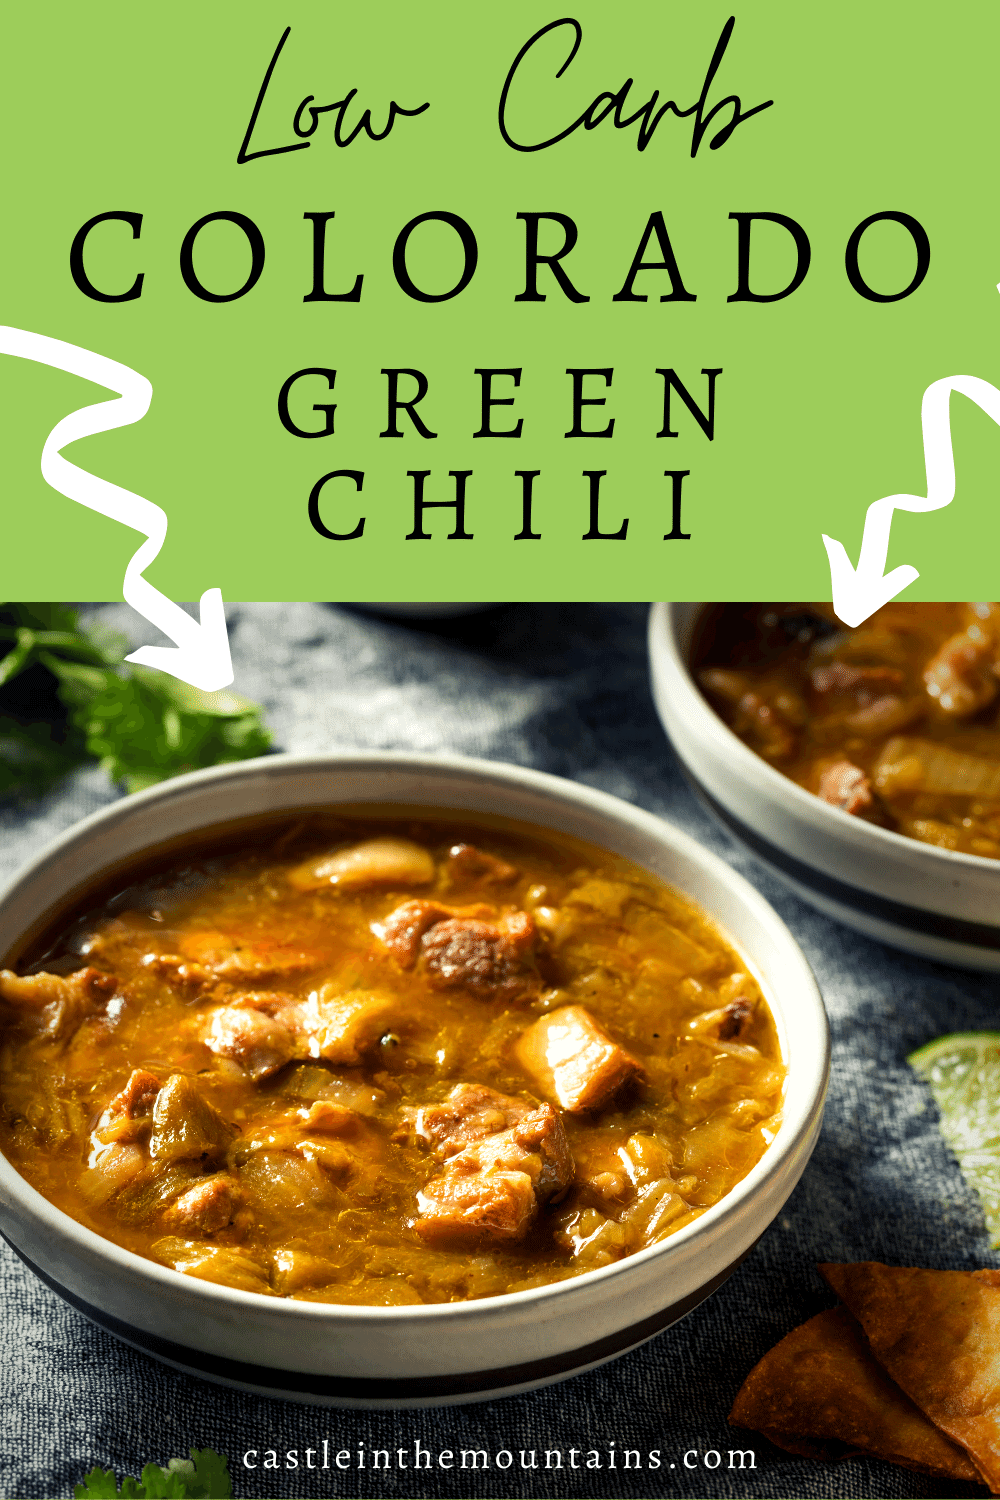 Colorado Green Chili - How to make the worlds best chili!